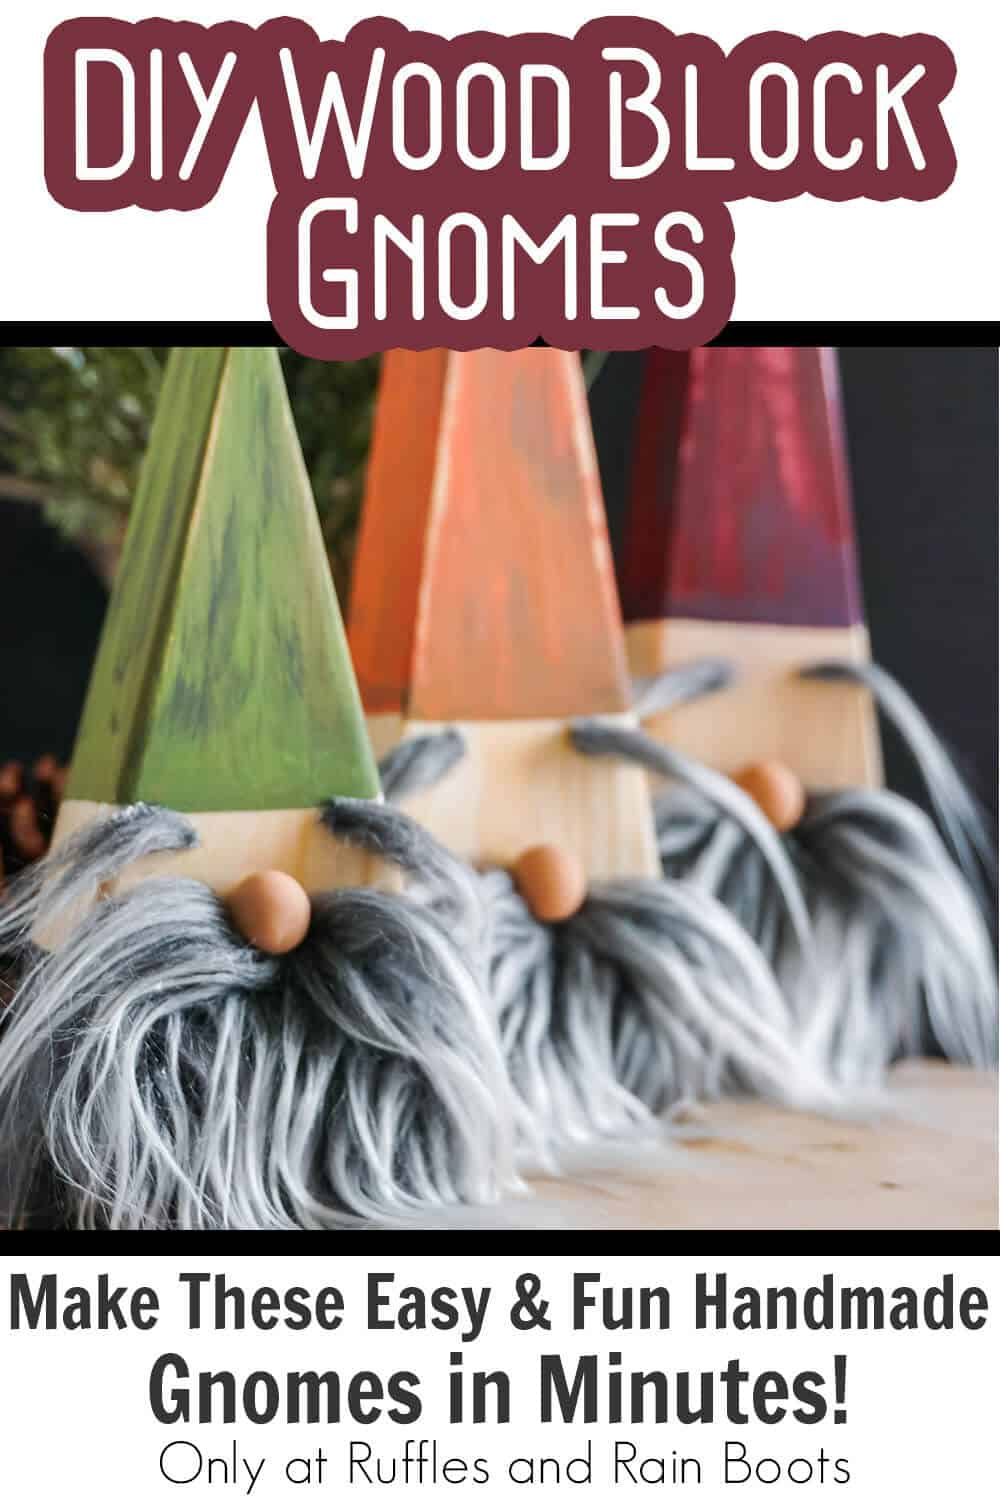 farmhouse wooded gnome craft with text which reads diy wood block gnomes make these easy & fun handmade gnomes in minutes!